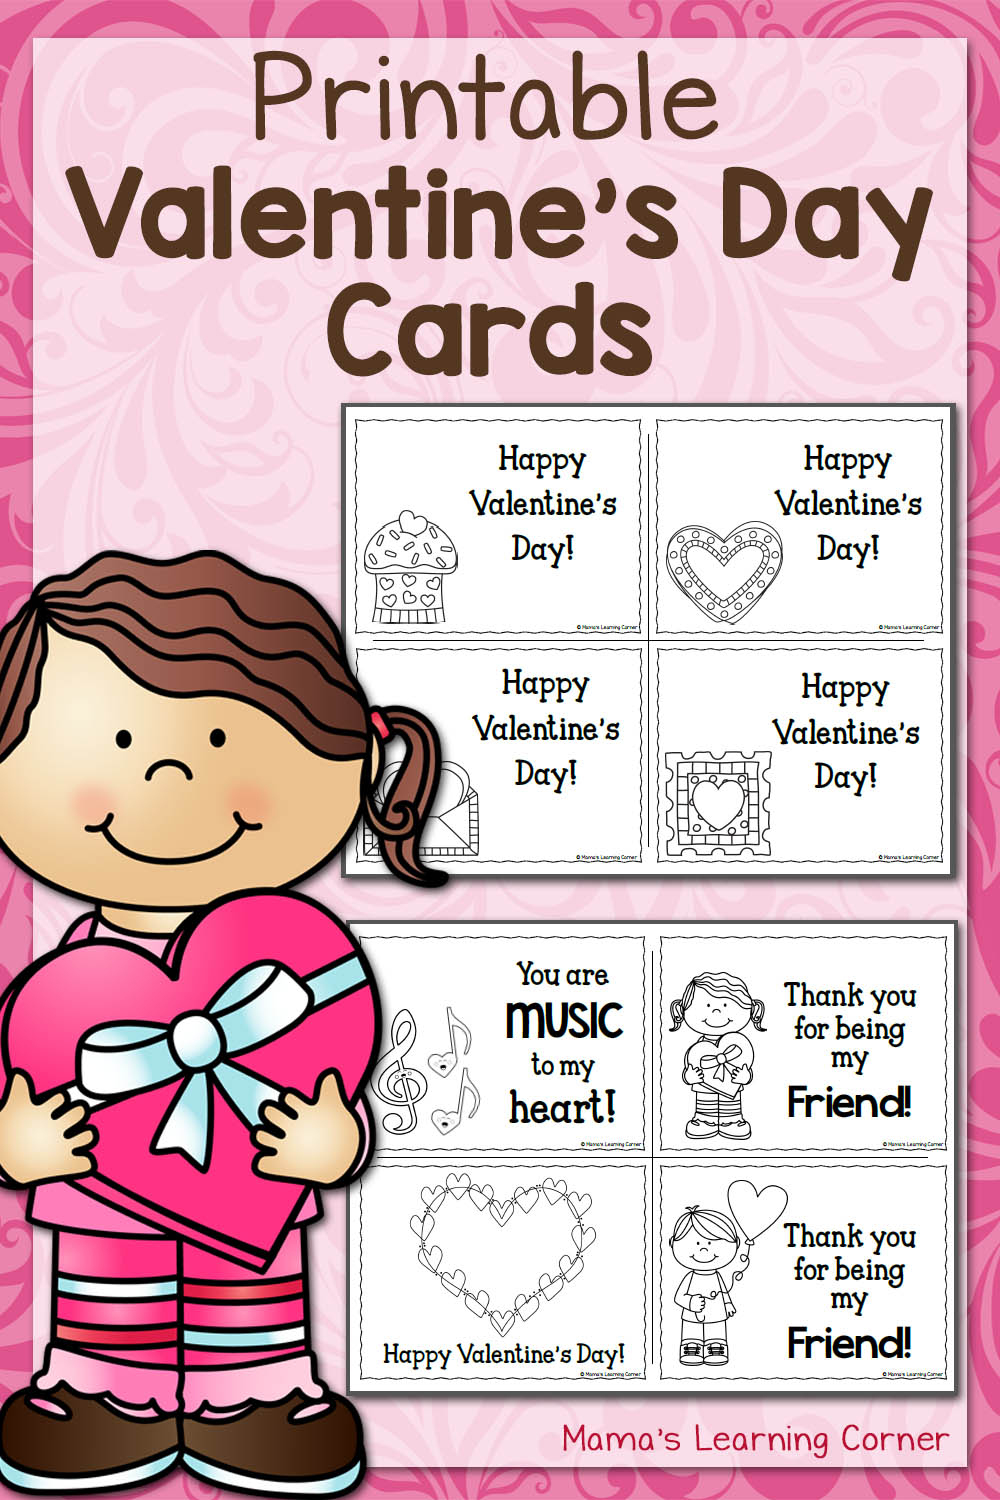 Printable Valentine's Day Cards - Mamas Learning Corner - Free Printable Preschool Valentine Worksheets